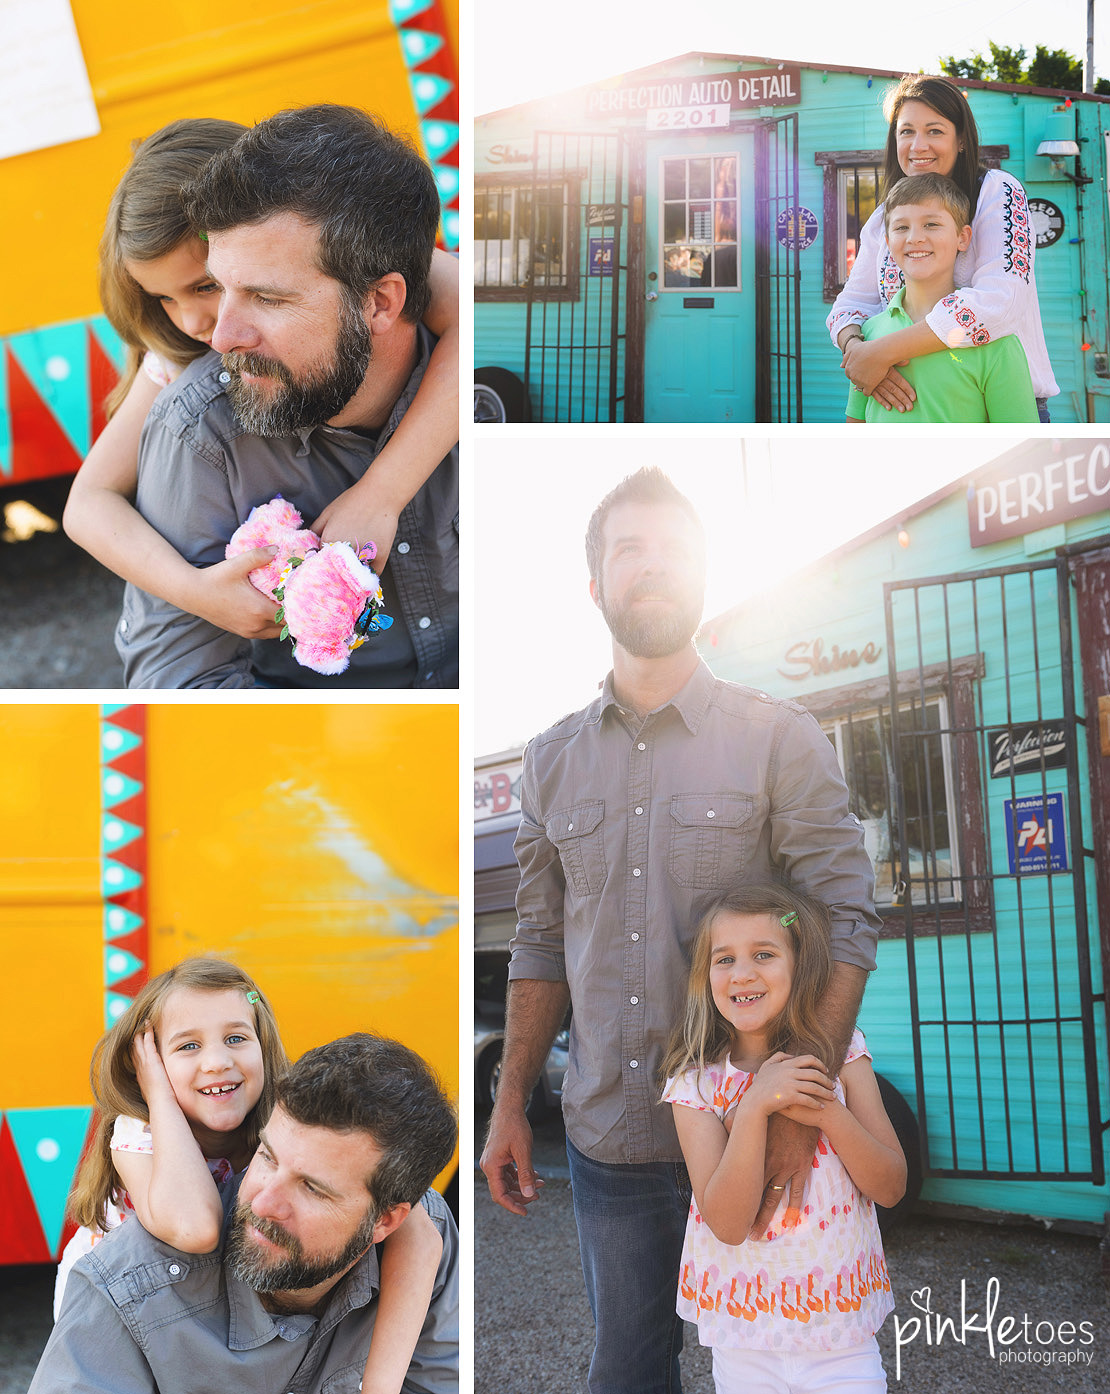 austin-urban-city-colorful-kids-family-photography-26